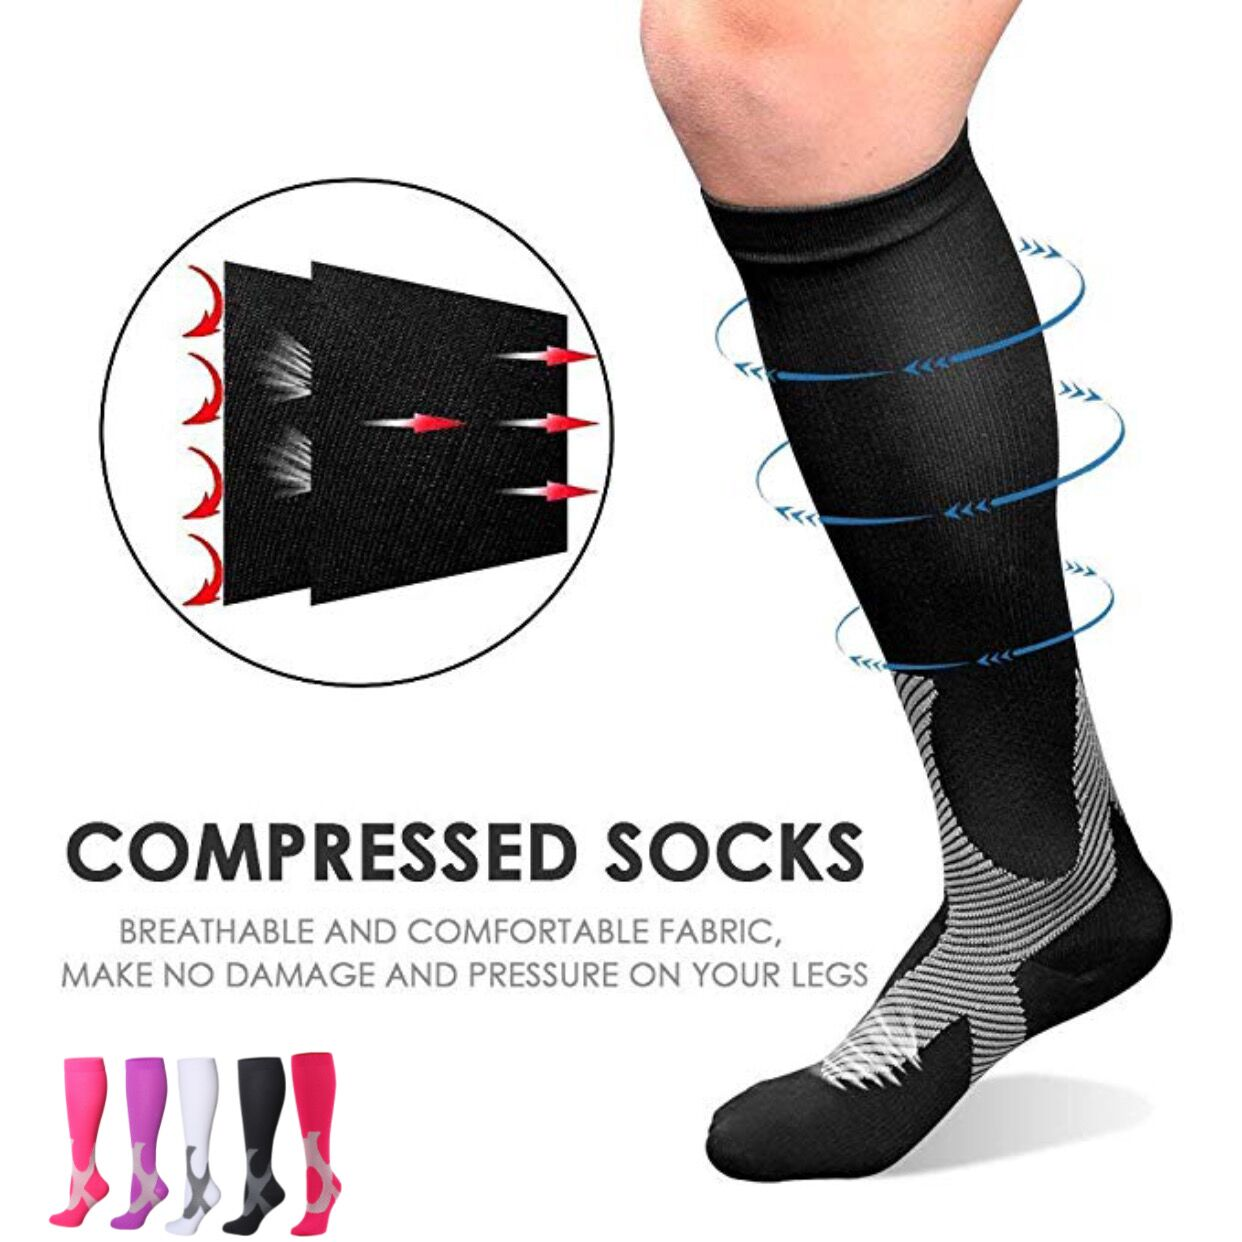 48 Color Elastic Unisex Compression Stockings Fit For Football Anti Fatigue Leg Protection For Men Women Breathable Travel Socks